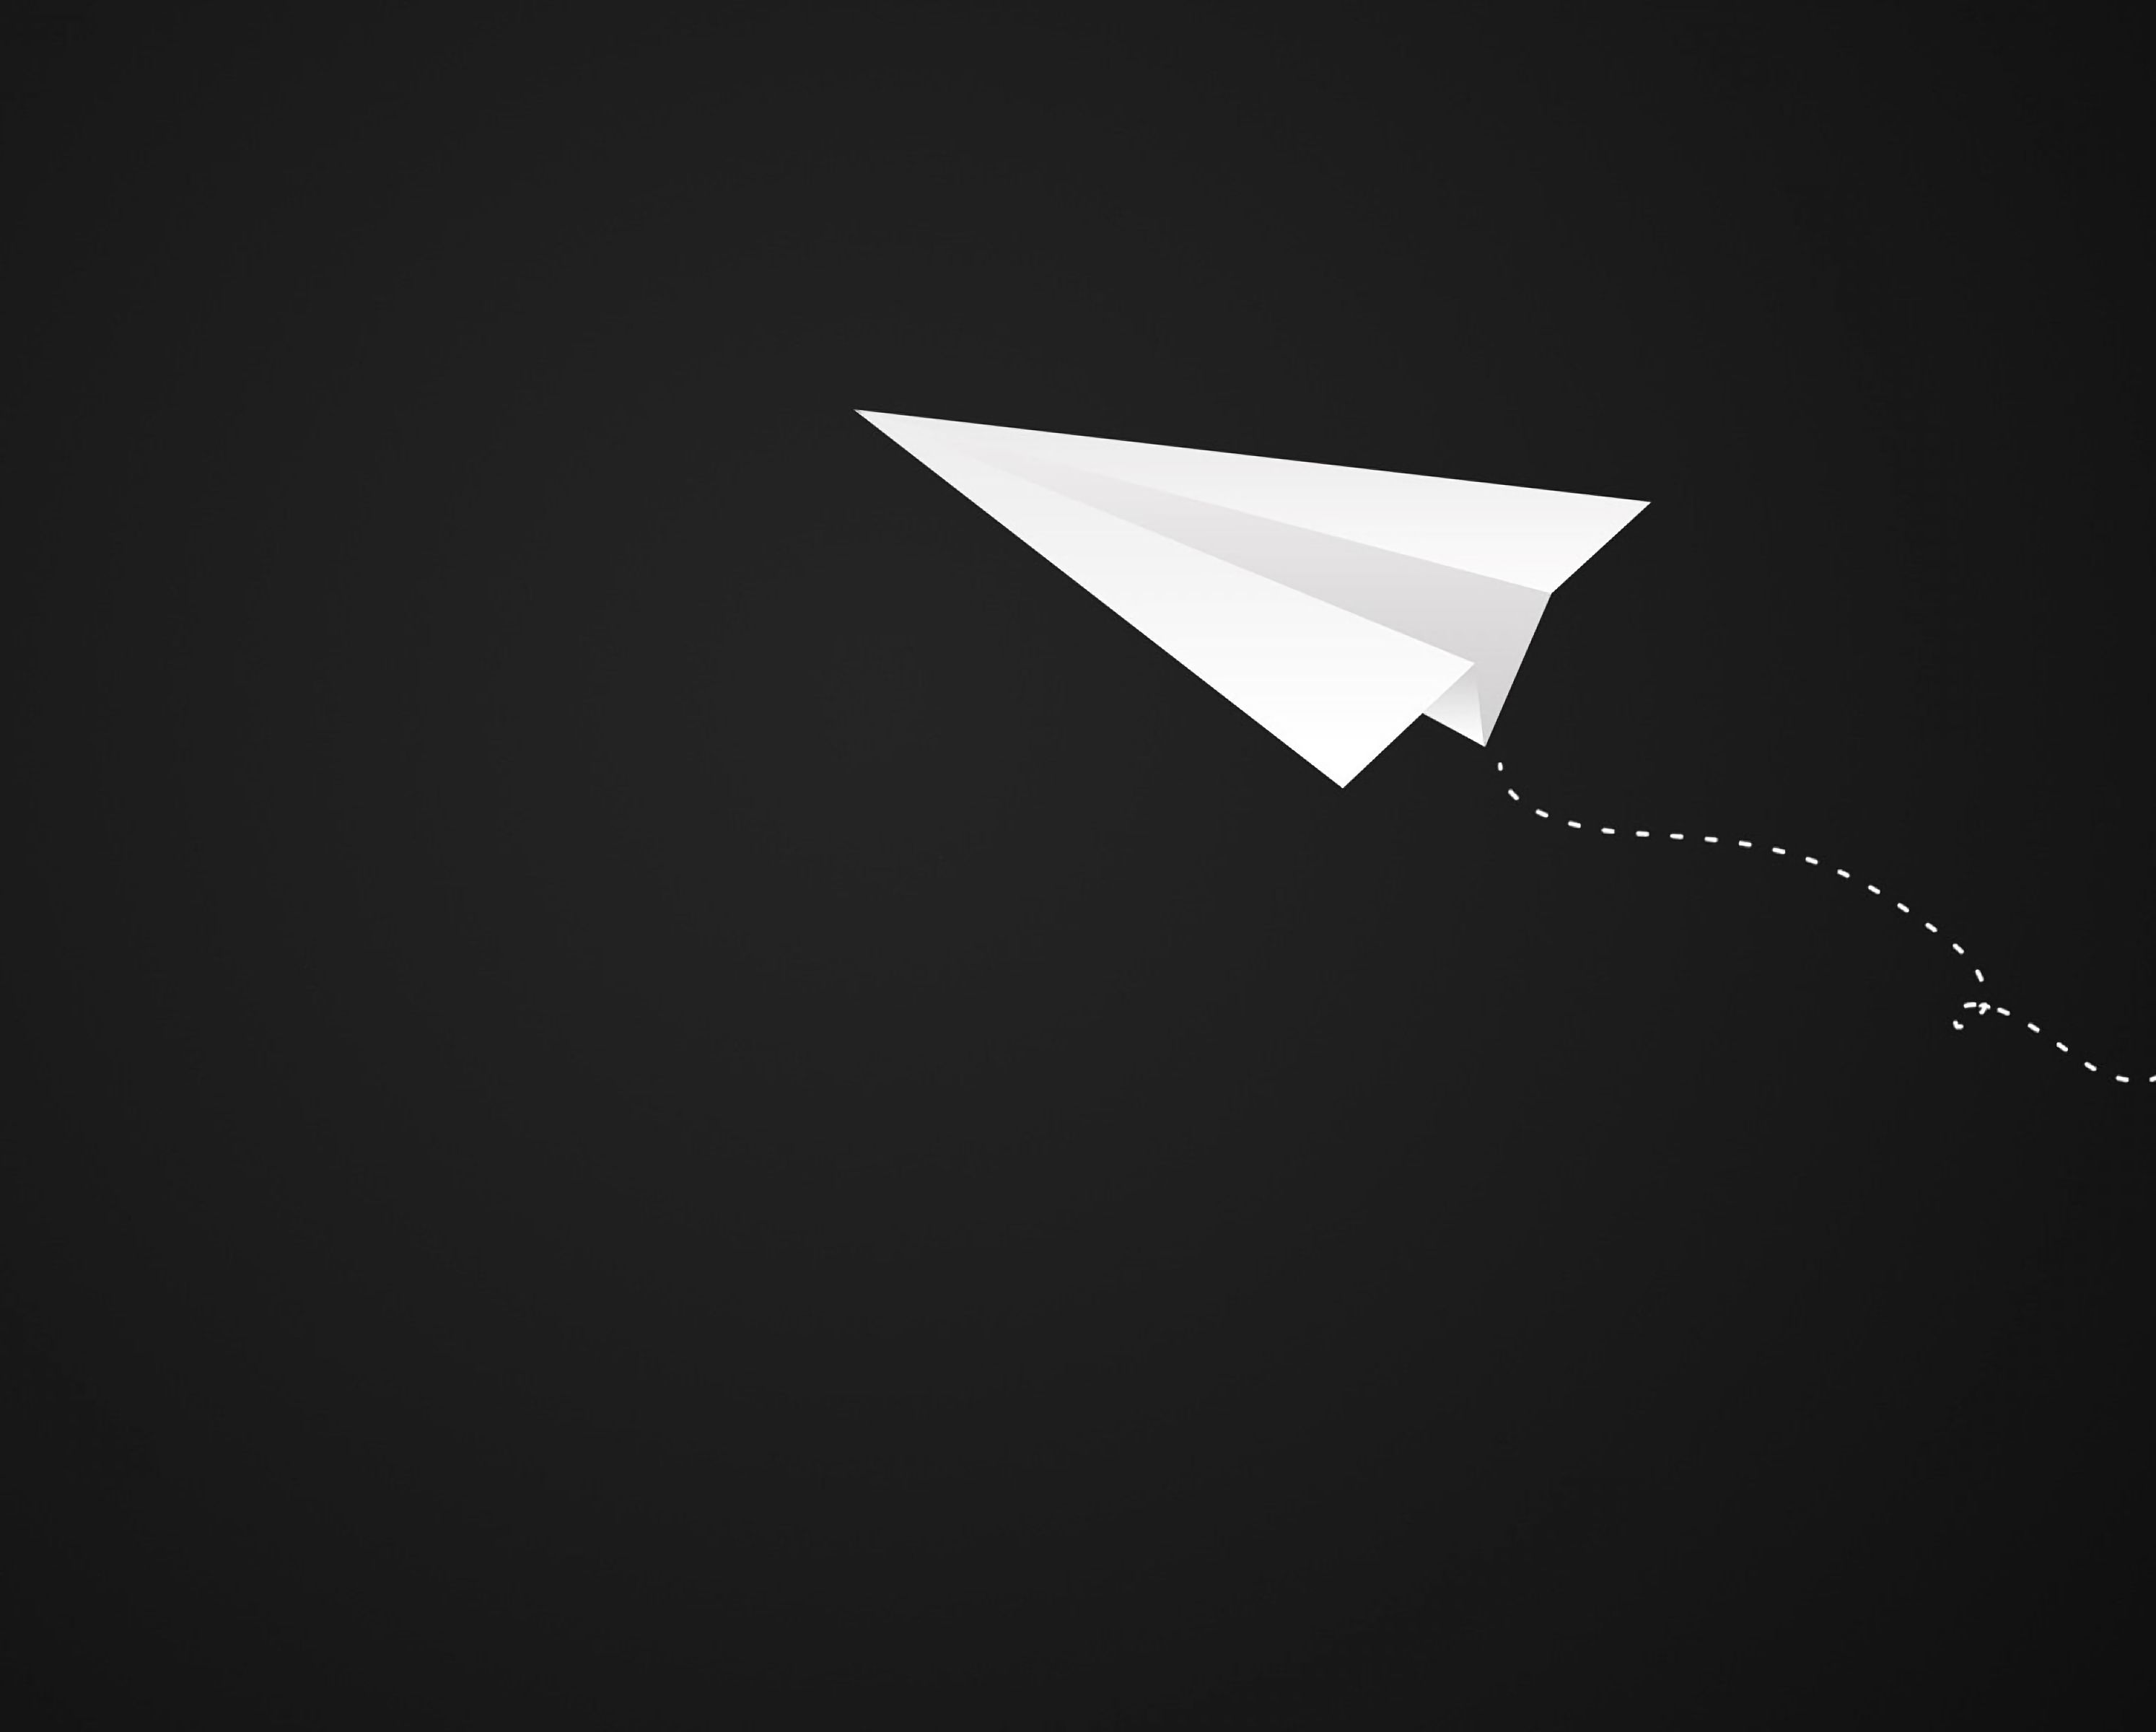 142738 download wallpaper Minimalism, Origami, Plane, Airplane, Art, Paper screensavers and pictures for free